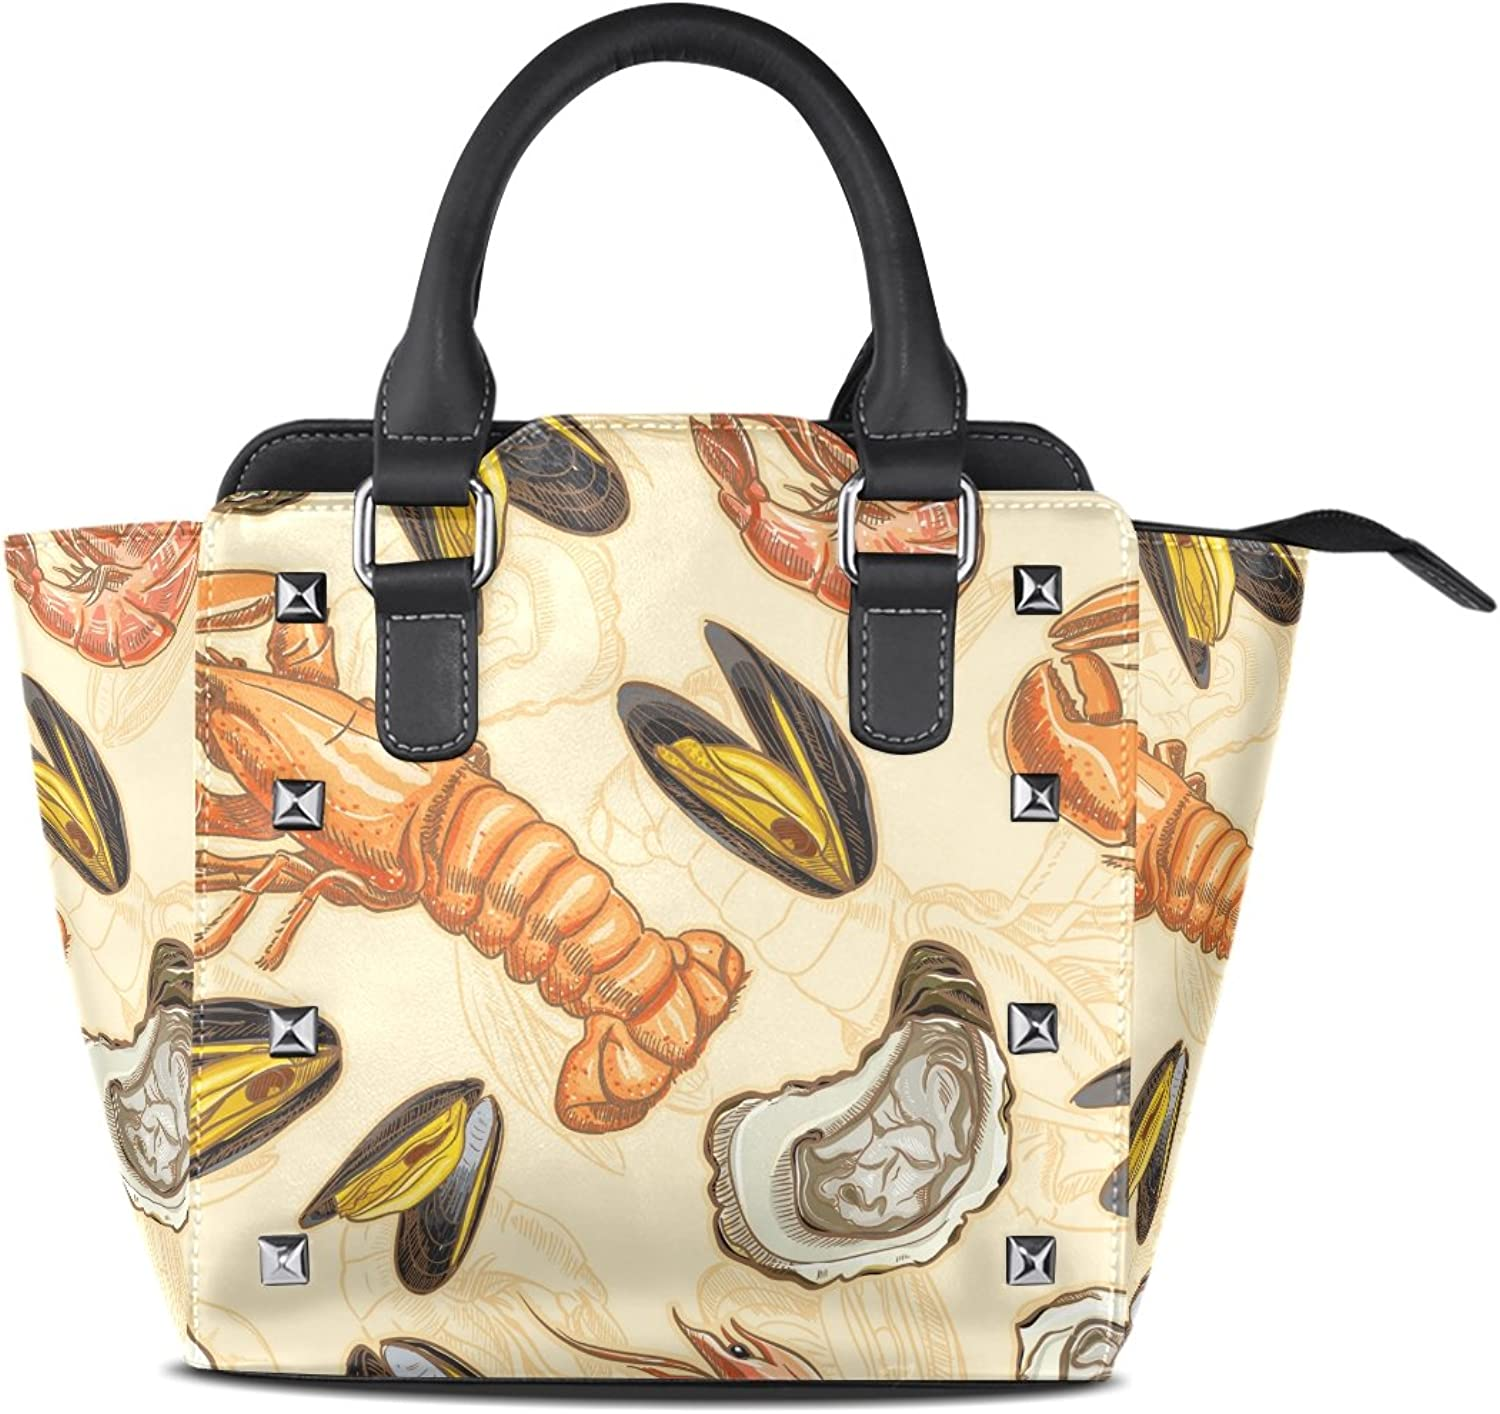 Sunlome Seafood Shrimp Scallop Print Handbags Women's PU Leather Top-Handle Shoulder Bags